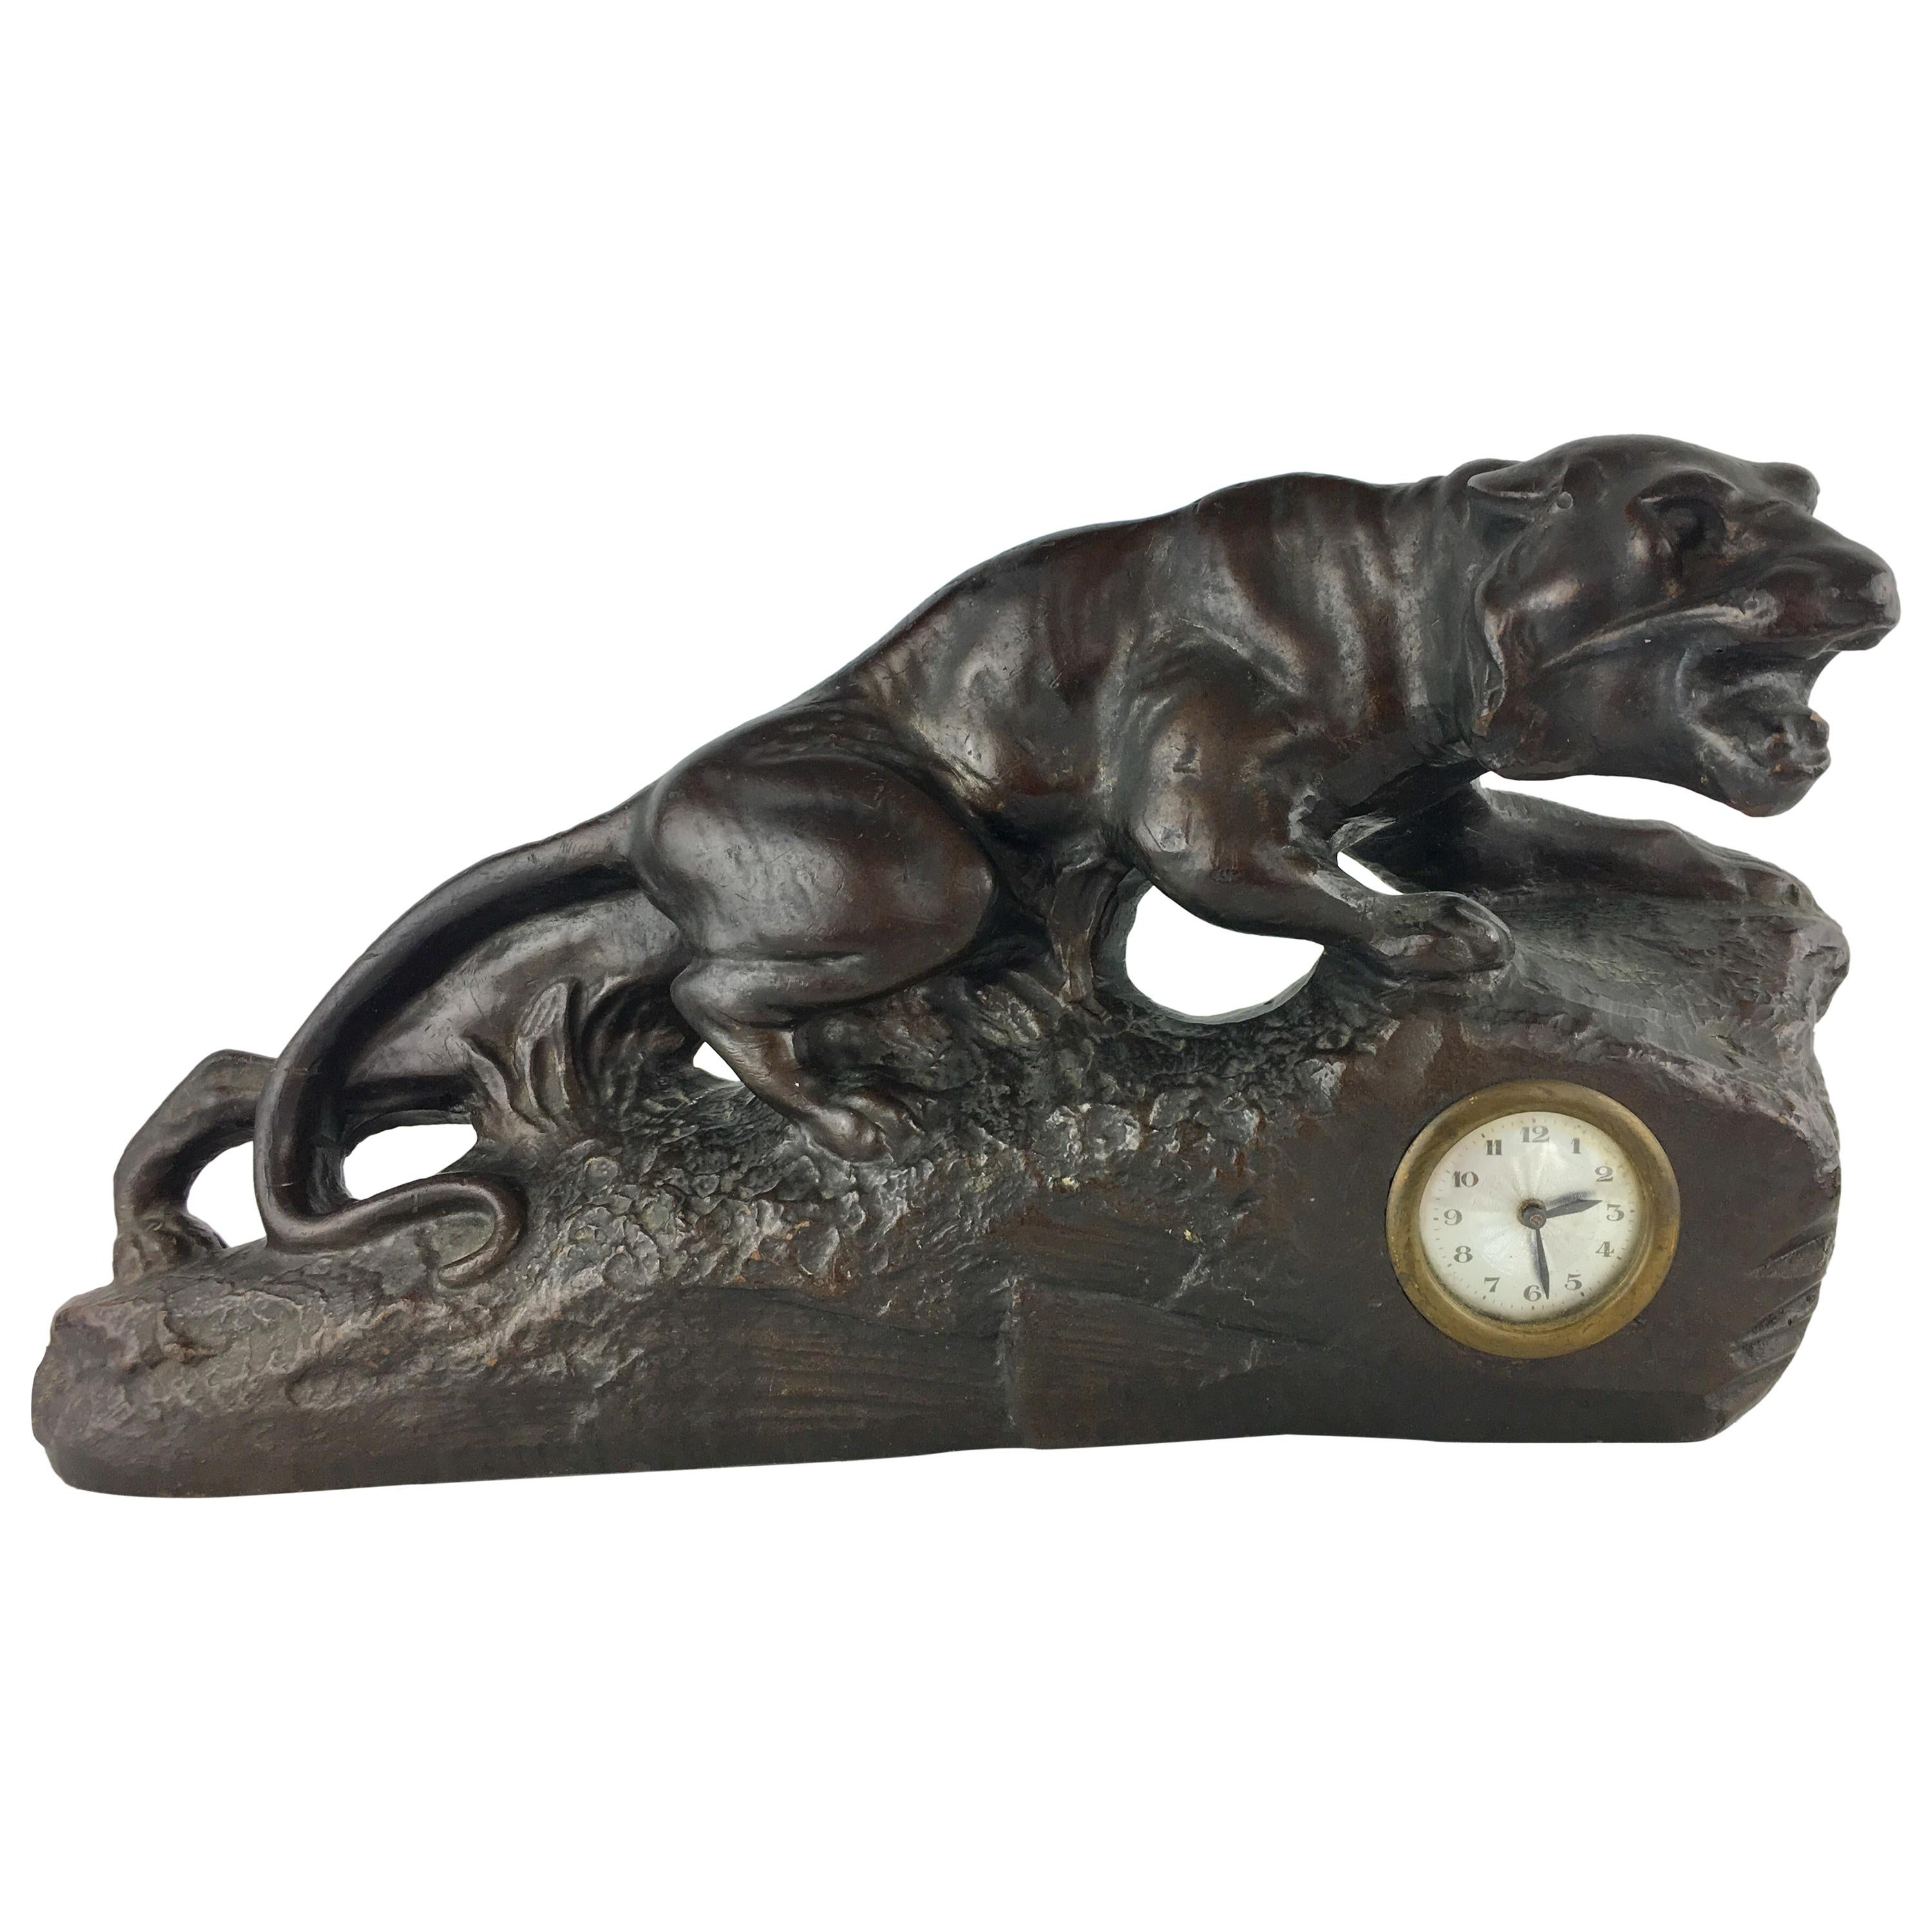 French Art Deco Panther Sculpture and Clock, circa 1930